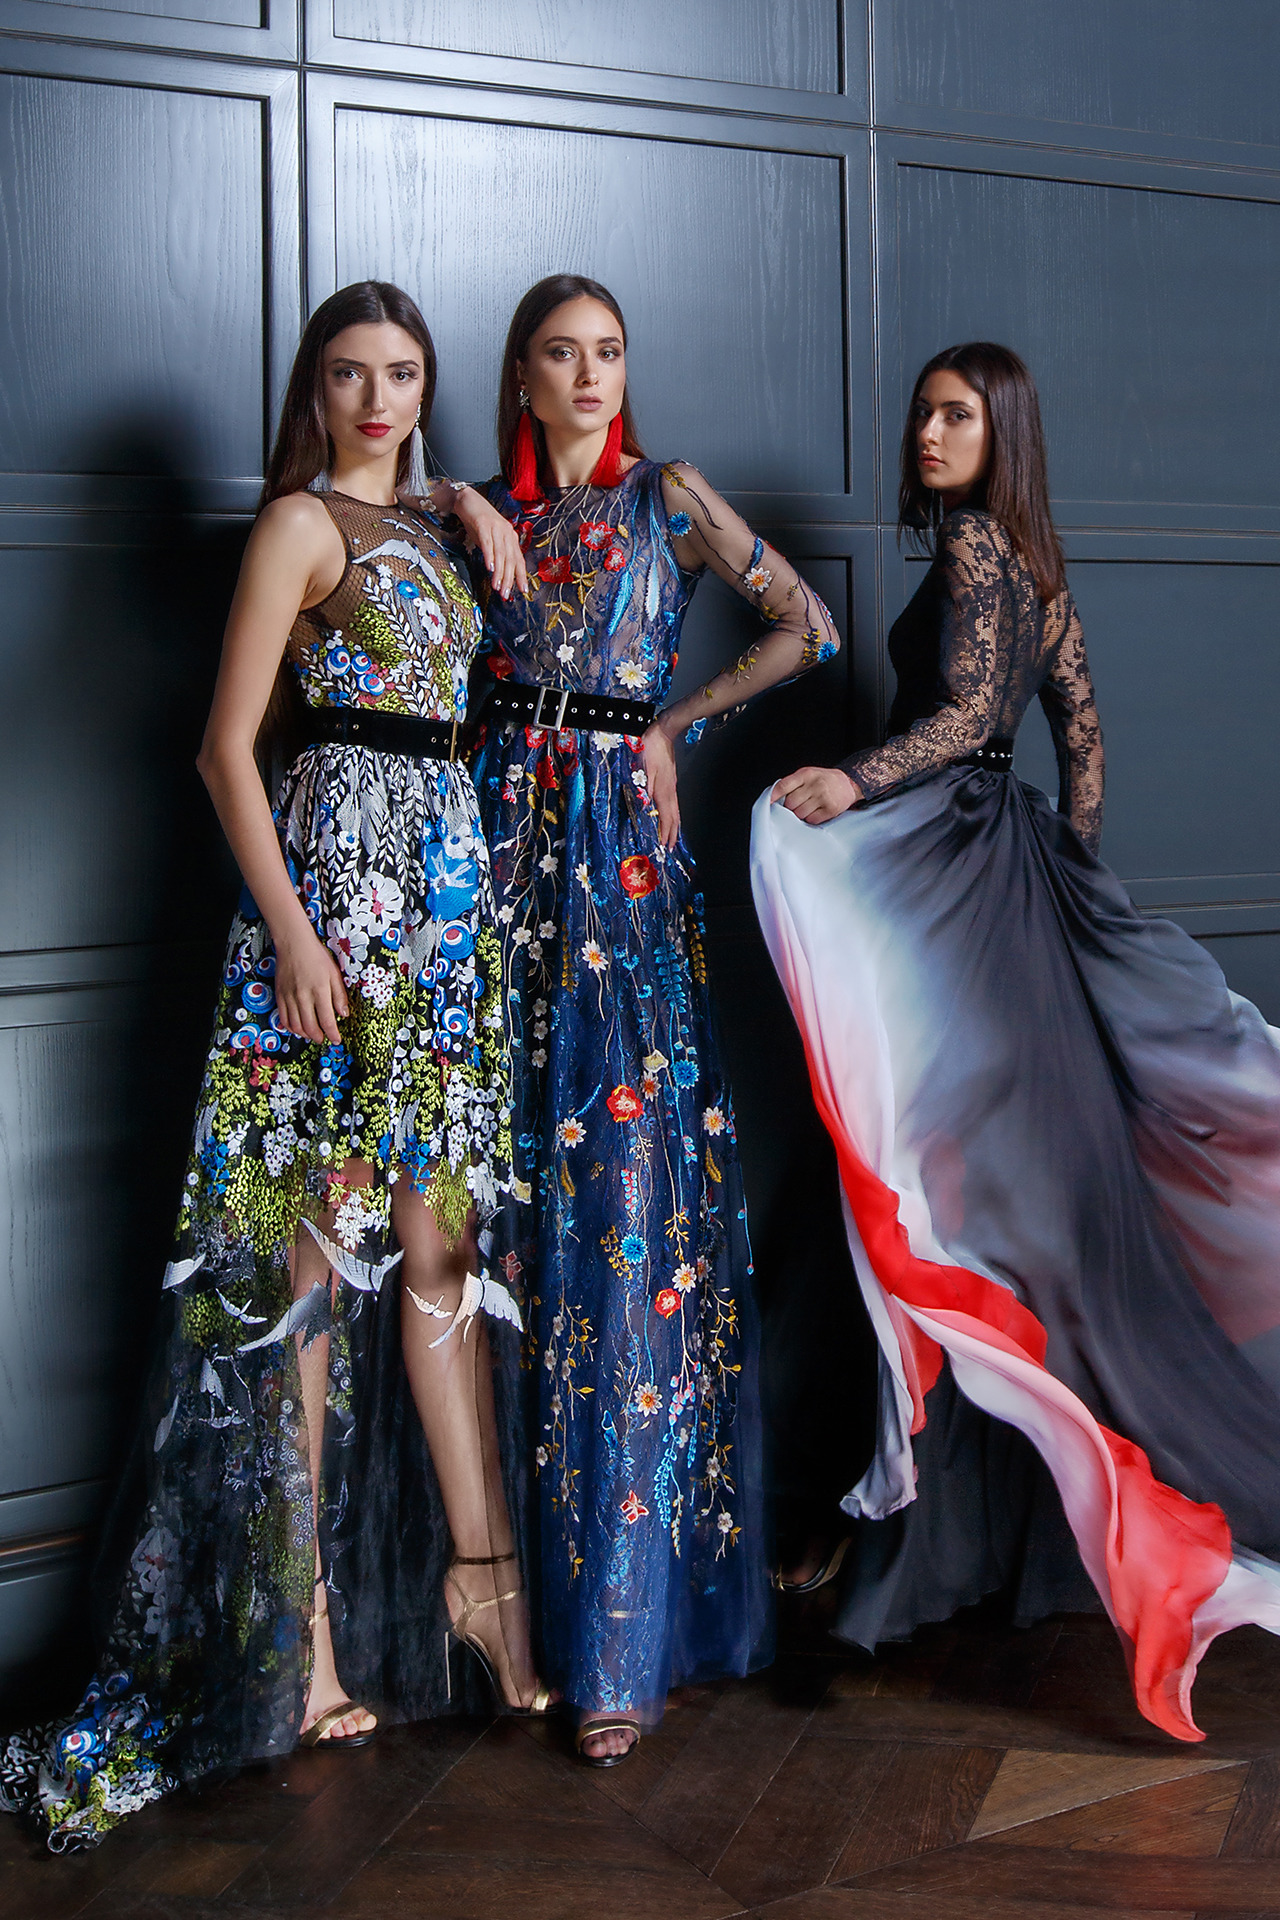 Evening gowns 1352 Silhouette  A Line  Color  Multi  Neckline  Halter  Bateau (Boat Neck)  Sleeves  Wide straps  Train  With train